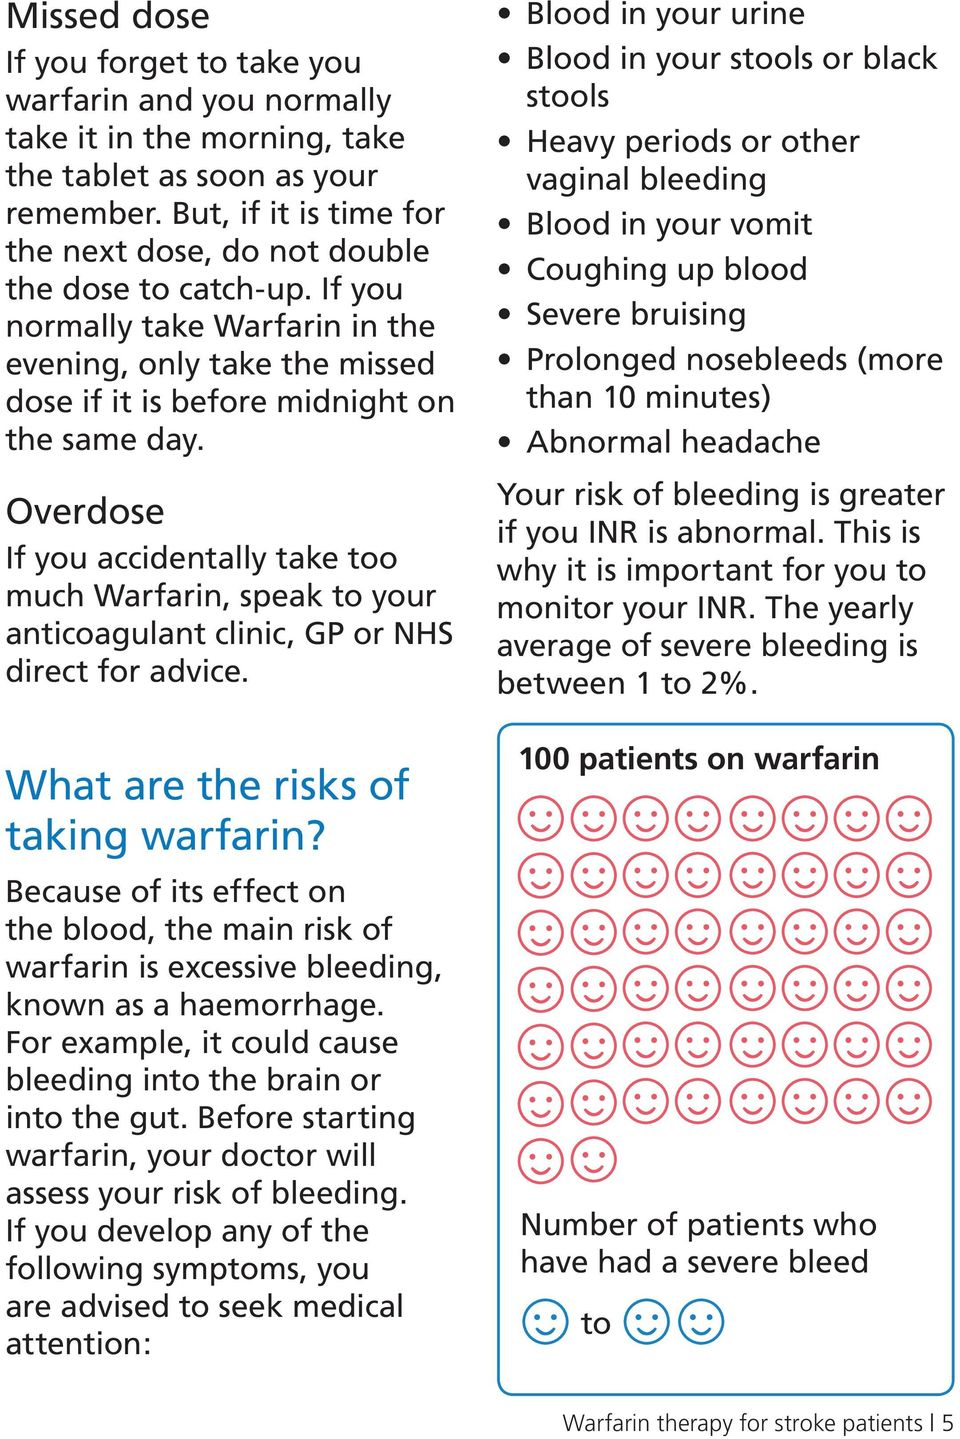 Overdose If you accidentally take too much Warfarin, speak to your anticoagulant clinic, GP or NHS direct for advice. What are the risks of taking warfarin?